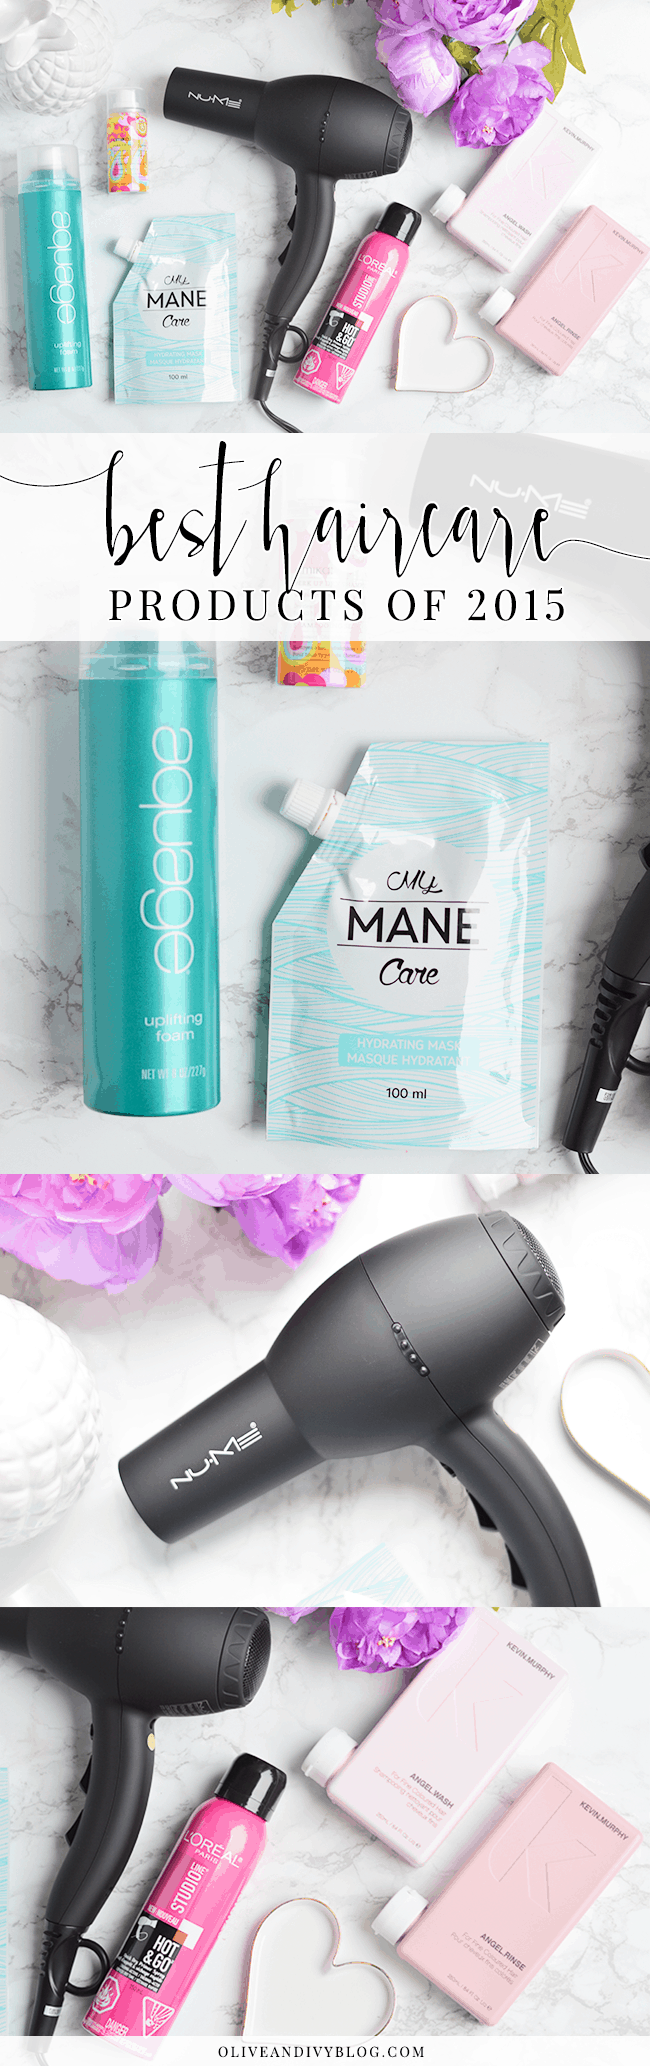 Best haircare products of 2015! | oliveandivyblog.com